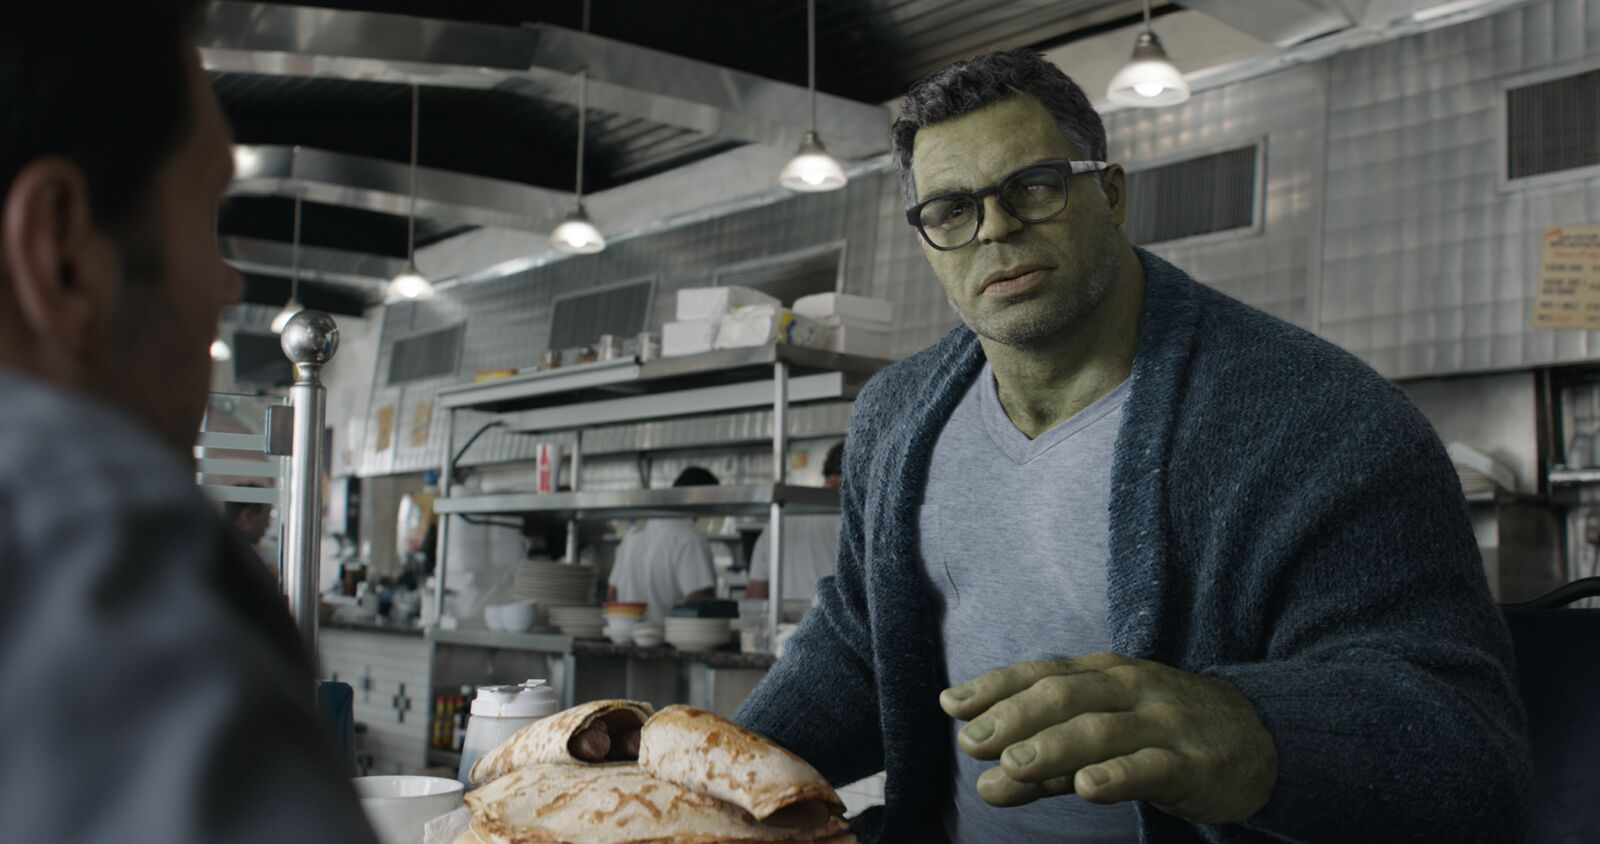 Lou Ferrigno was disappointed by the Hulk in Avengers: Endgame